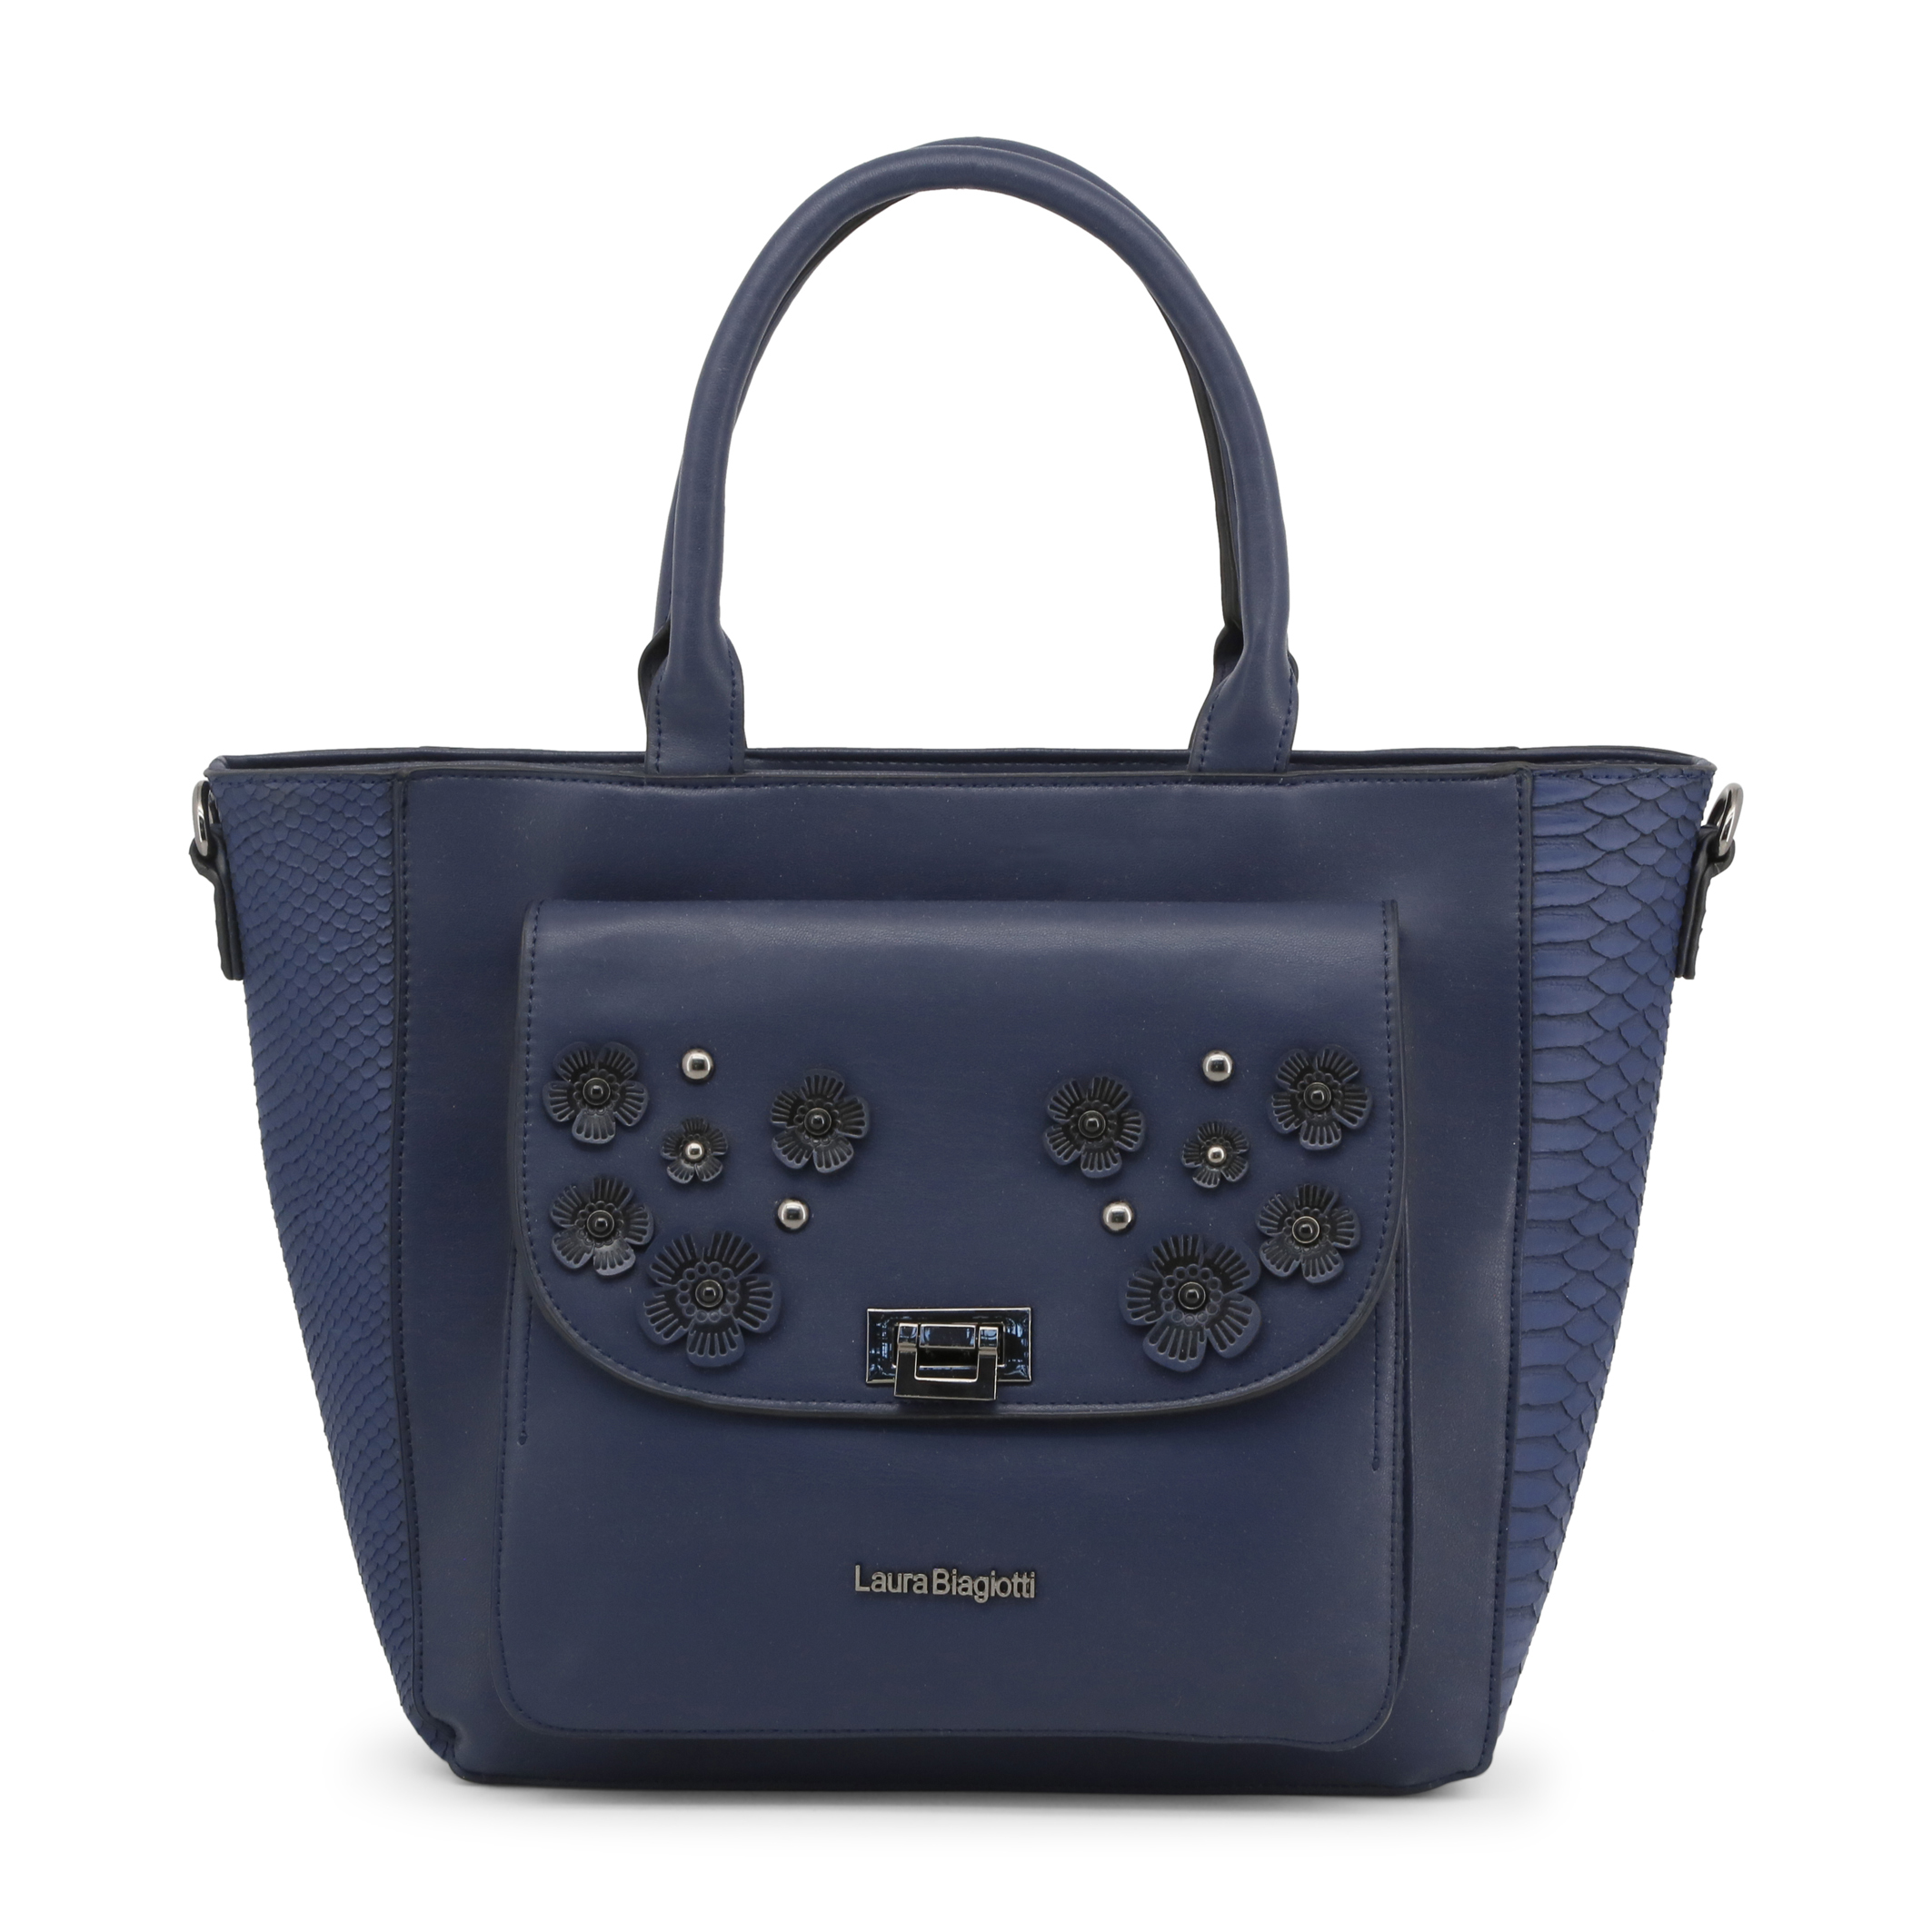 Shopping bag Laura Biagiotti LB18S114-5 Donna Blu 86231